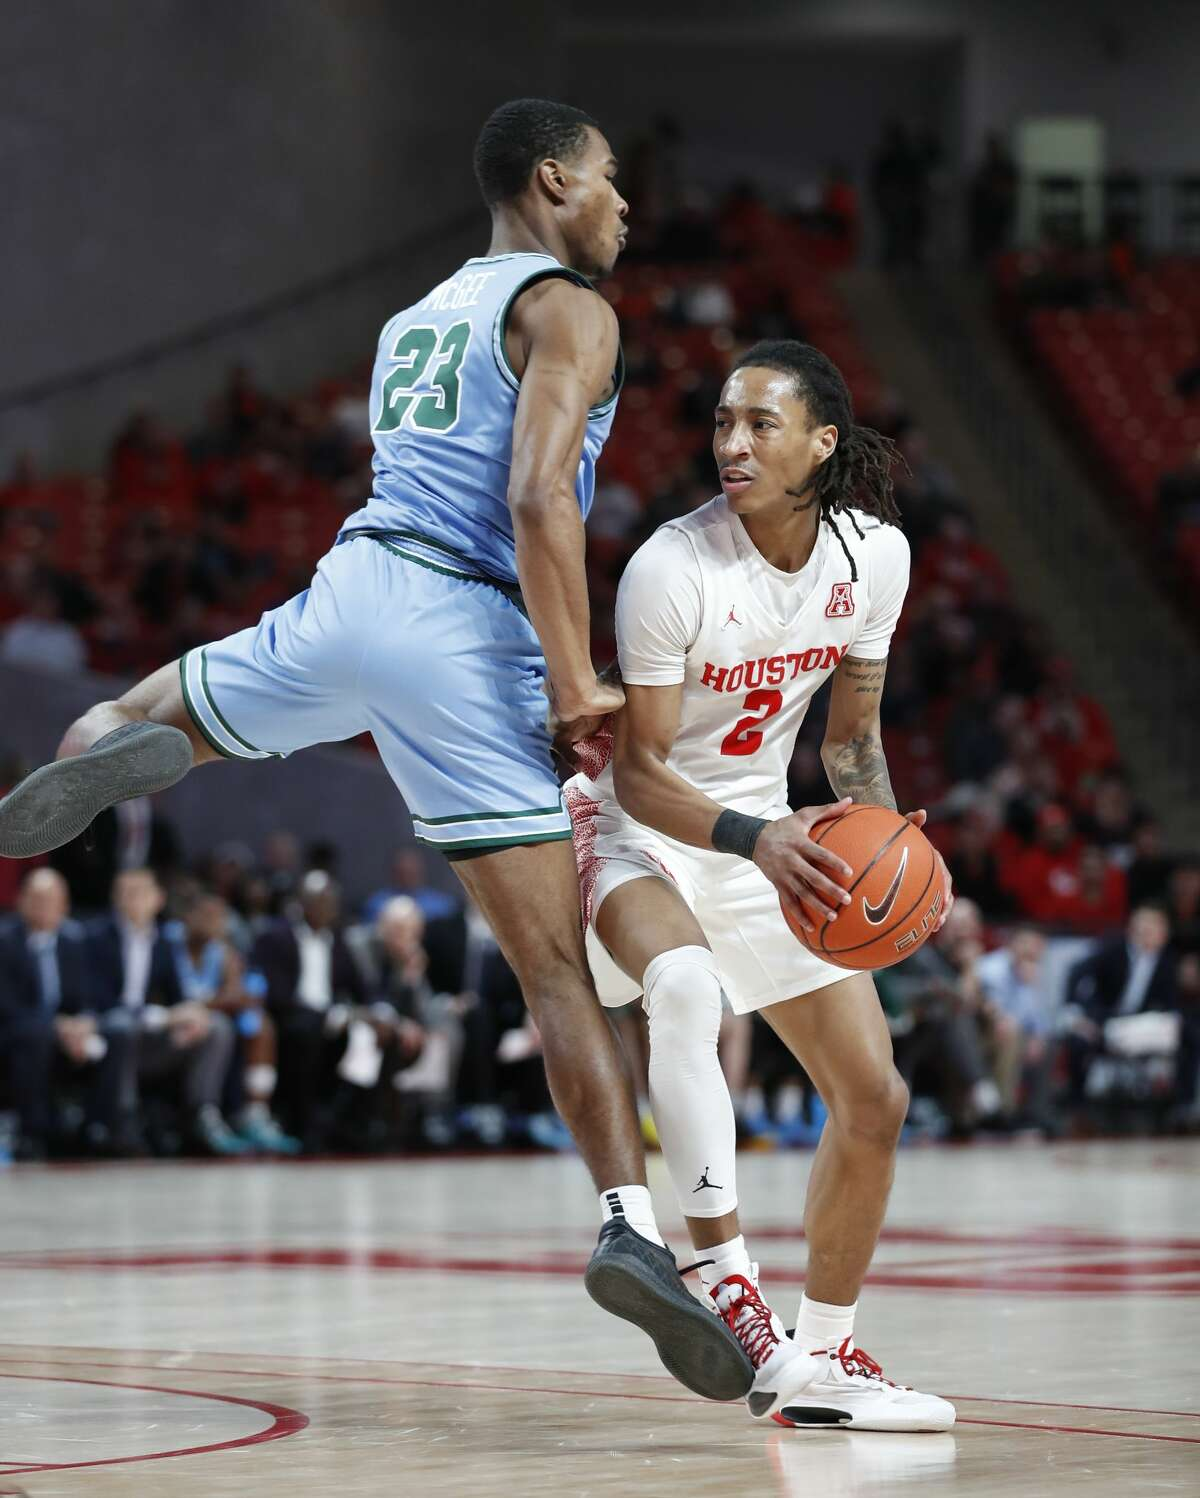 Houston Cougars guard Caleb Mills (2) stops as Tulane Green Wave guard R.J. McGee (23) nearly runs into him during the second half of an NCAA Men's basketball game at the Fertitta Center, in Houston, Thursday, Feb. 6, 2020.